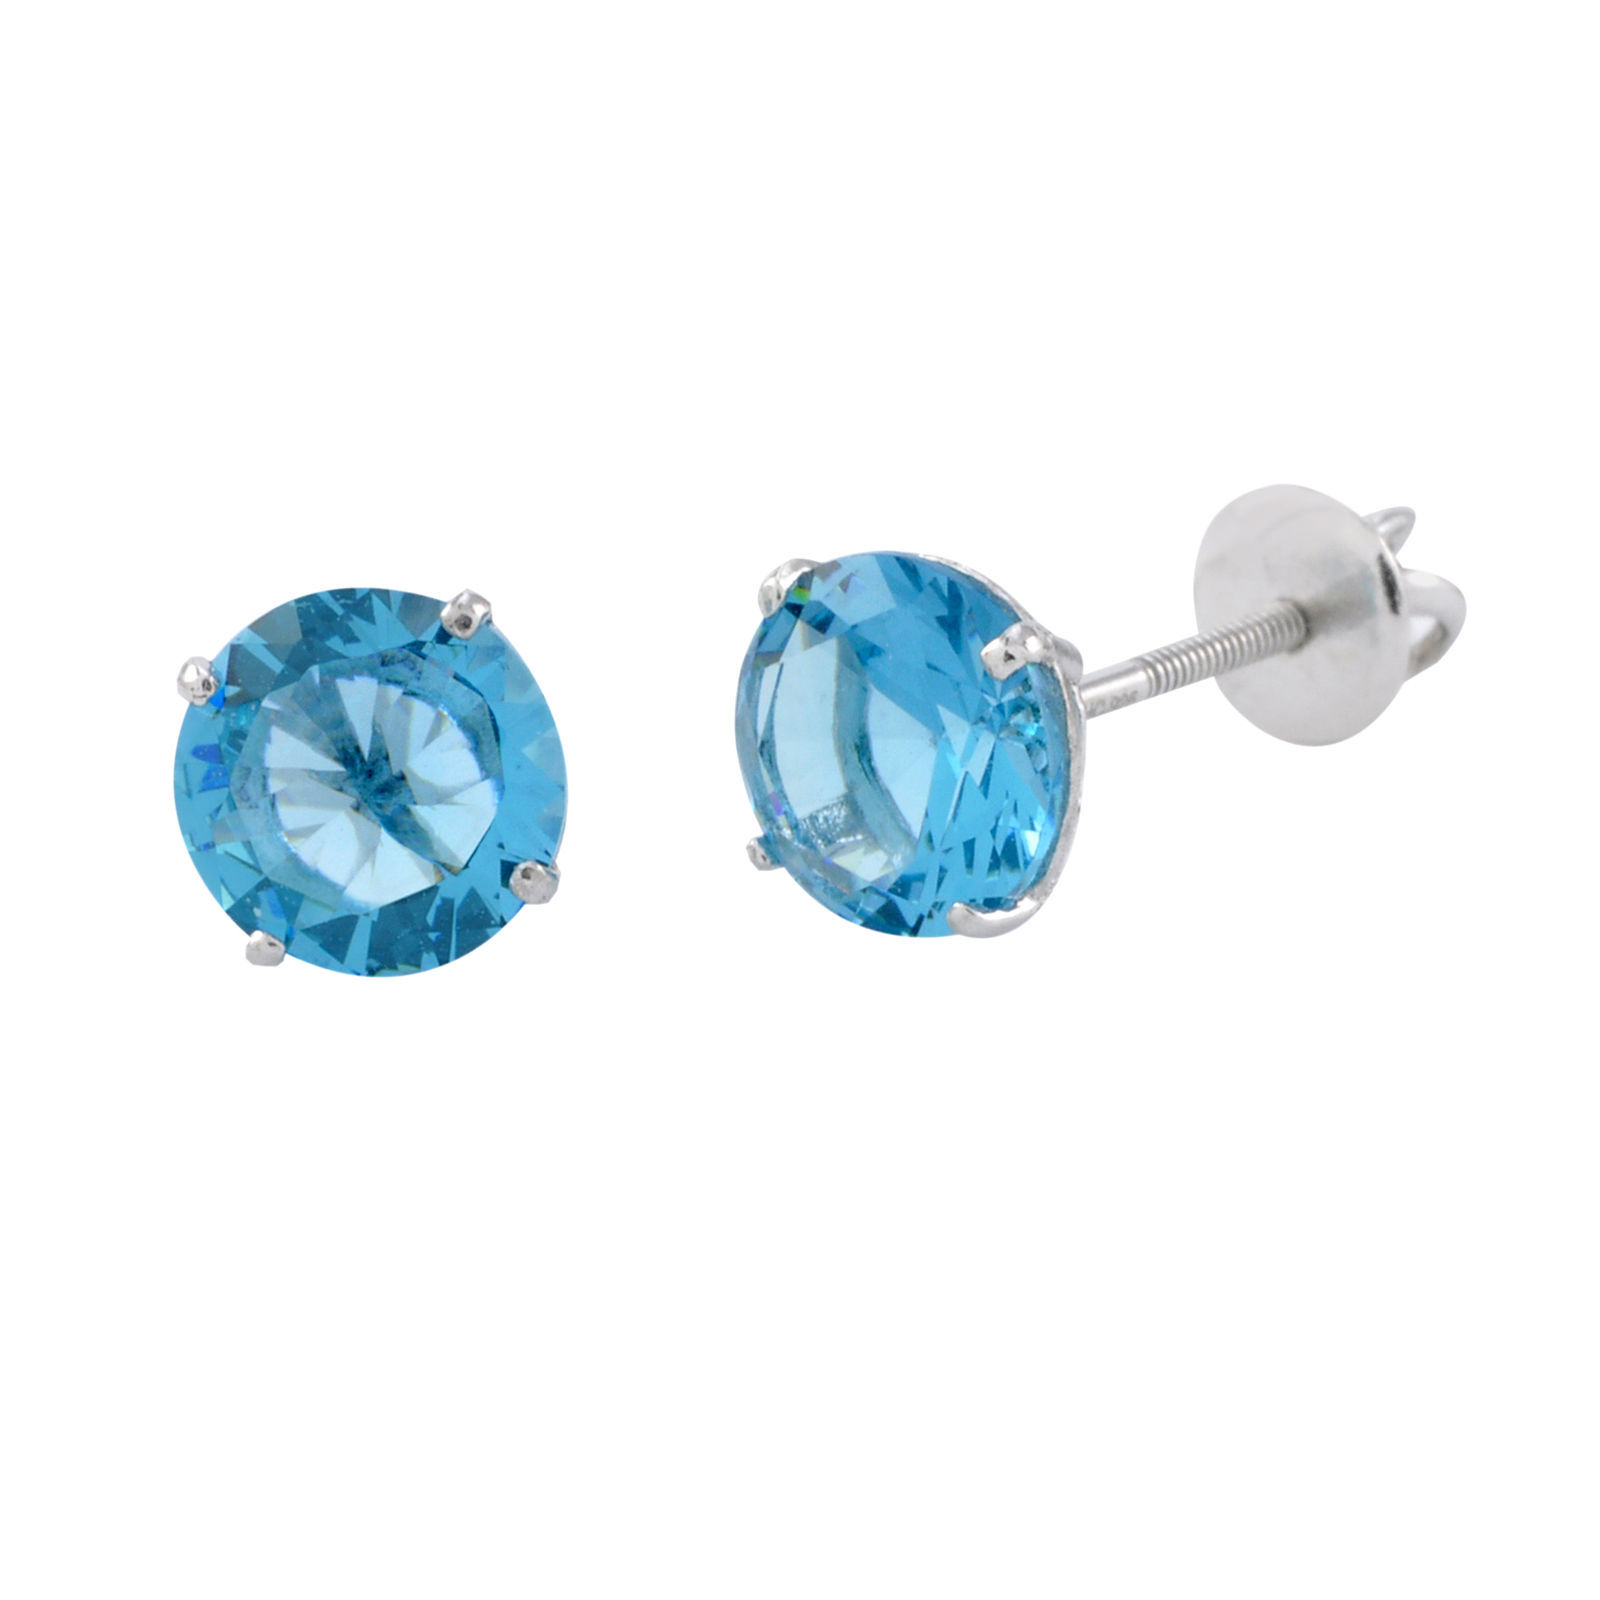 925 Sterling Silver Solitaire CZ Screw Back Stud Earrings Round Blue Topaz - $13.26 - $18.71